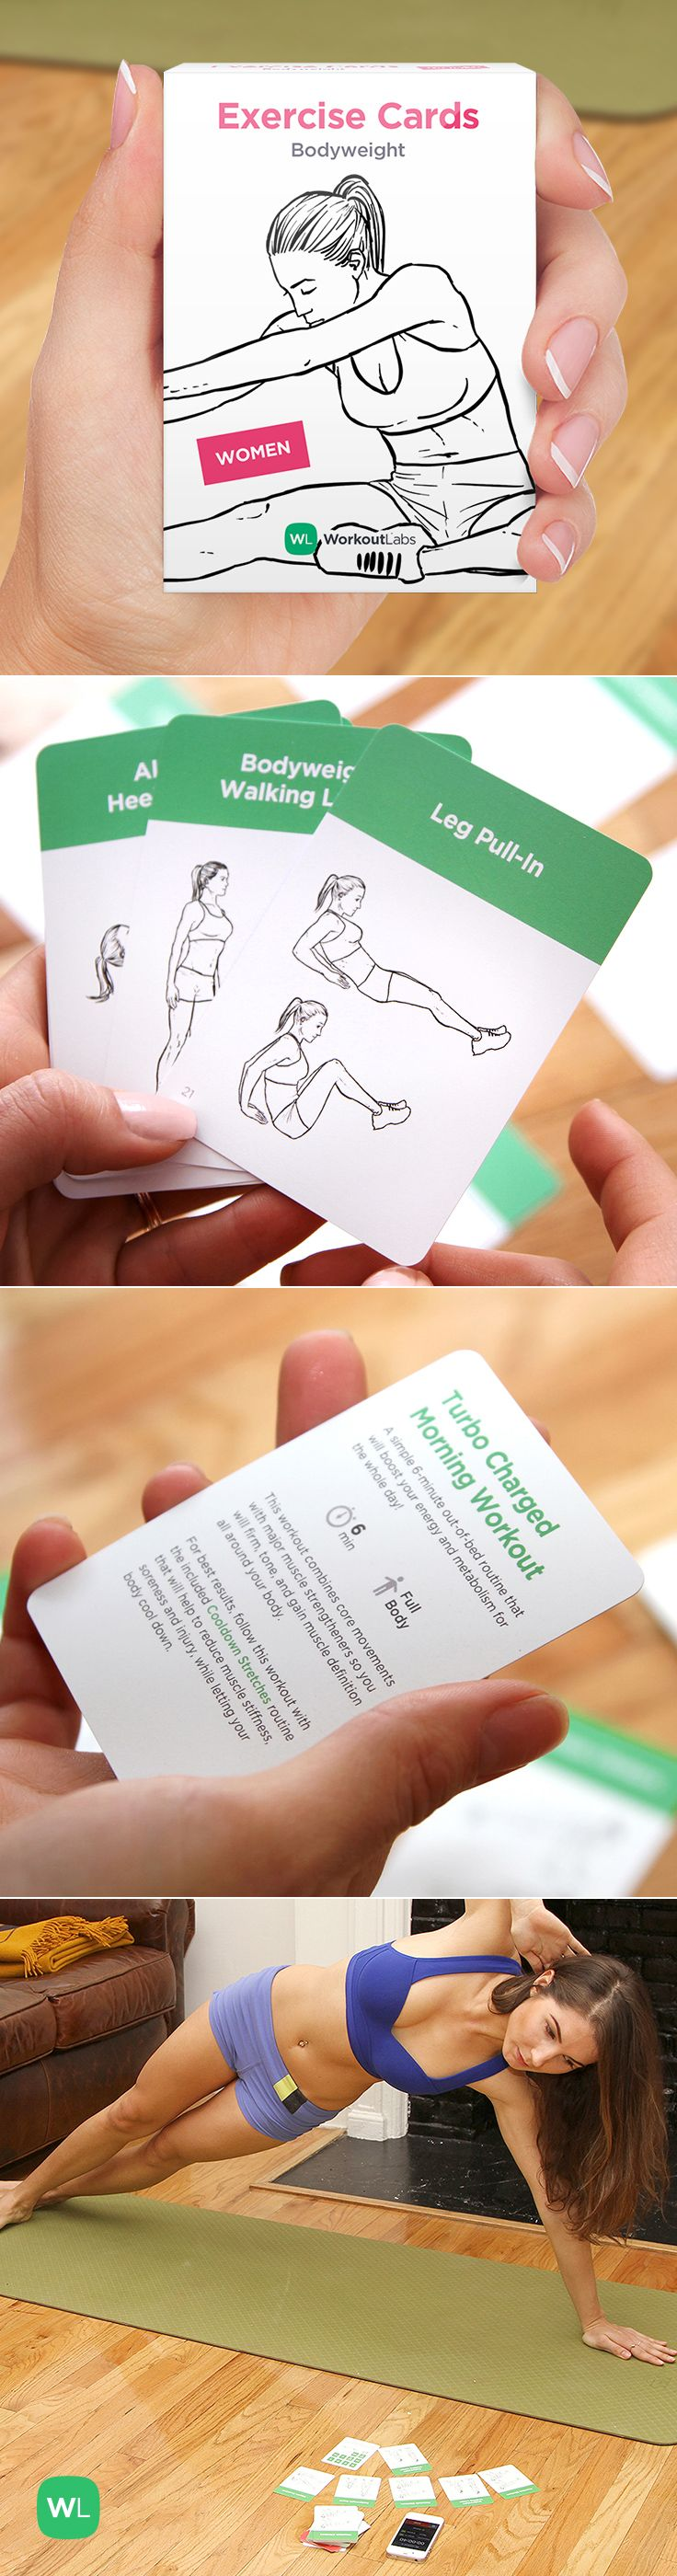 Exercise Cards – a fun and simple way to work out anywhere without weights or gym equipment! Visit https://WorkoutLabs.com/exercise-cards